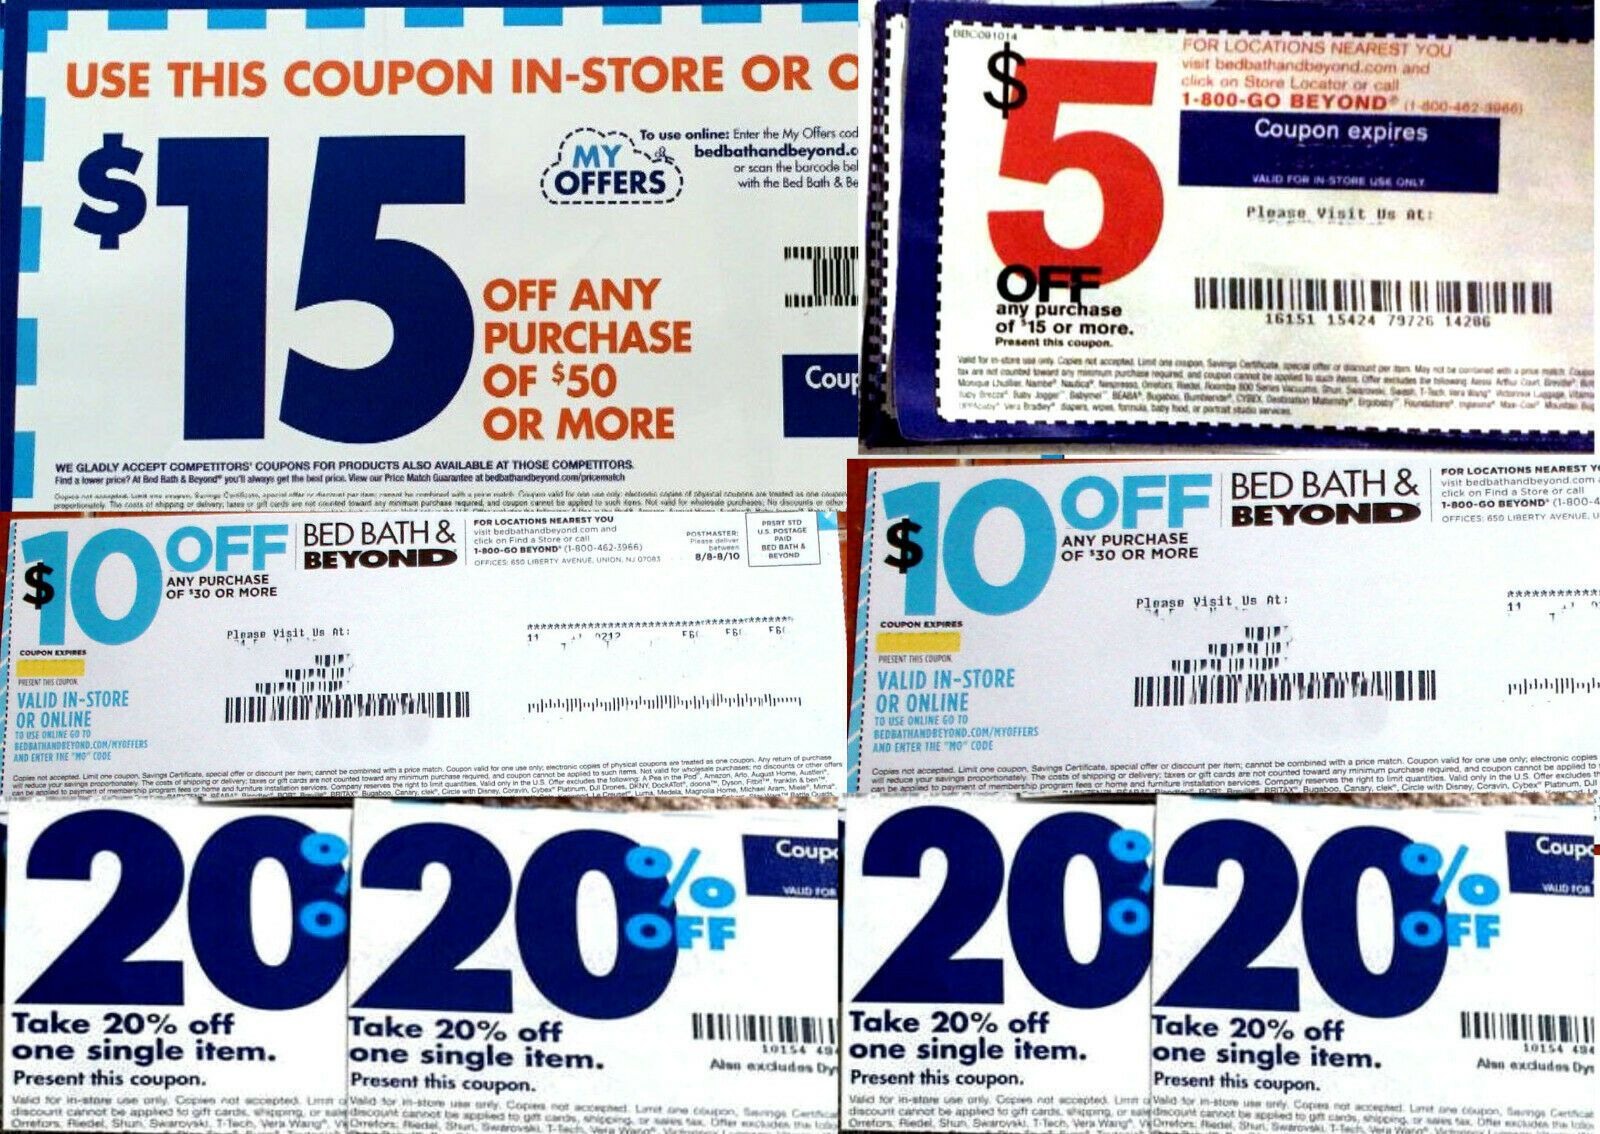 8 Bed Bath Beyond Coupons 2 10 Off 30 1 15 Off 50 1 5 Off